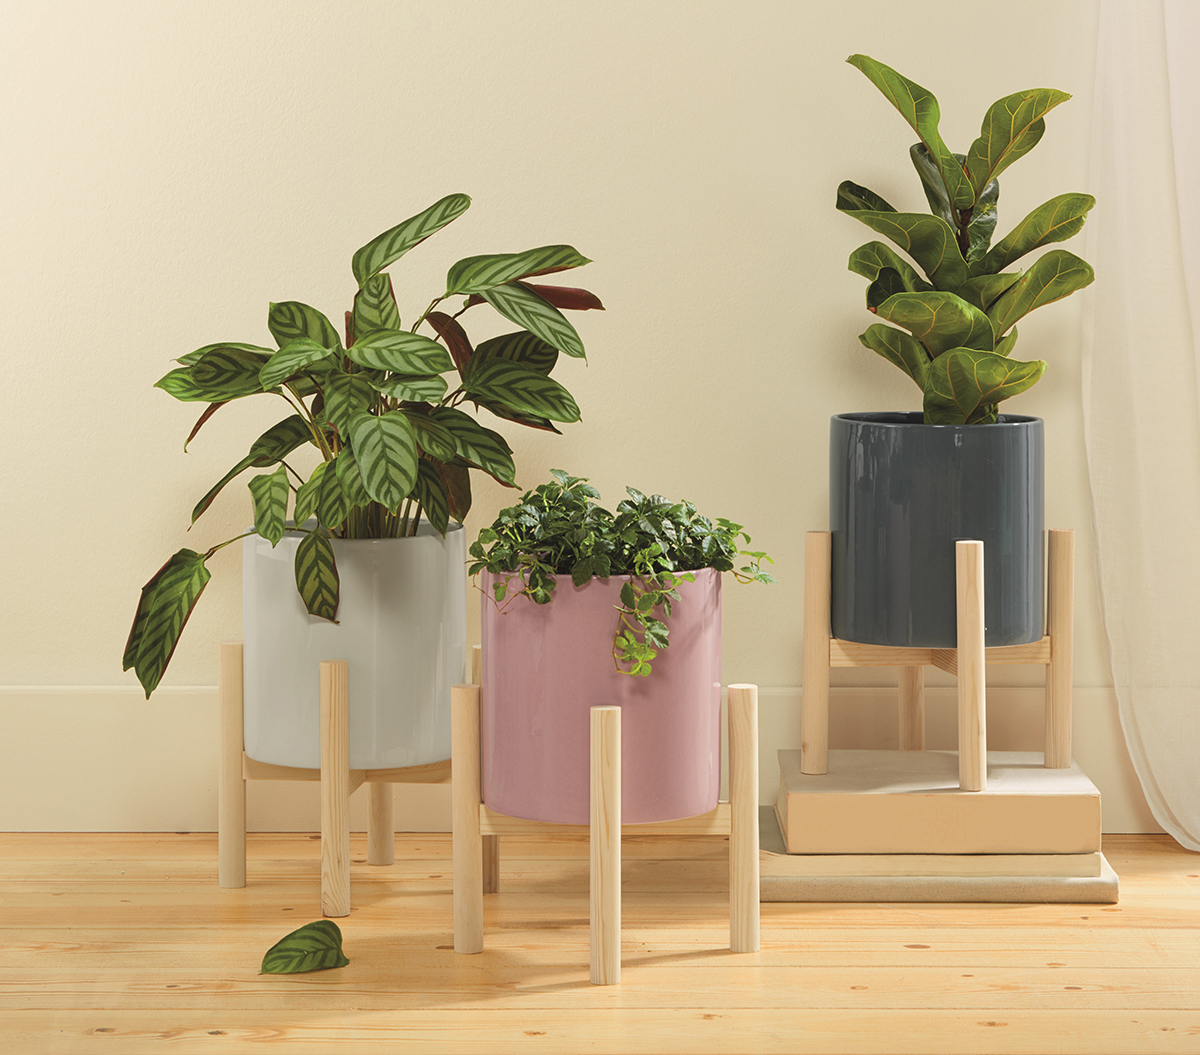 Melinara plant pots from Lidl